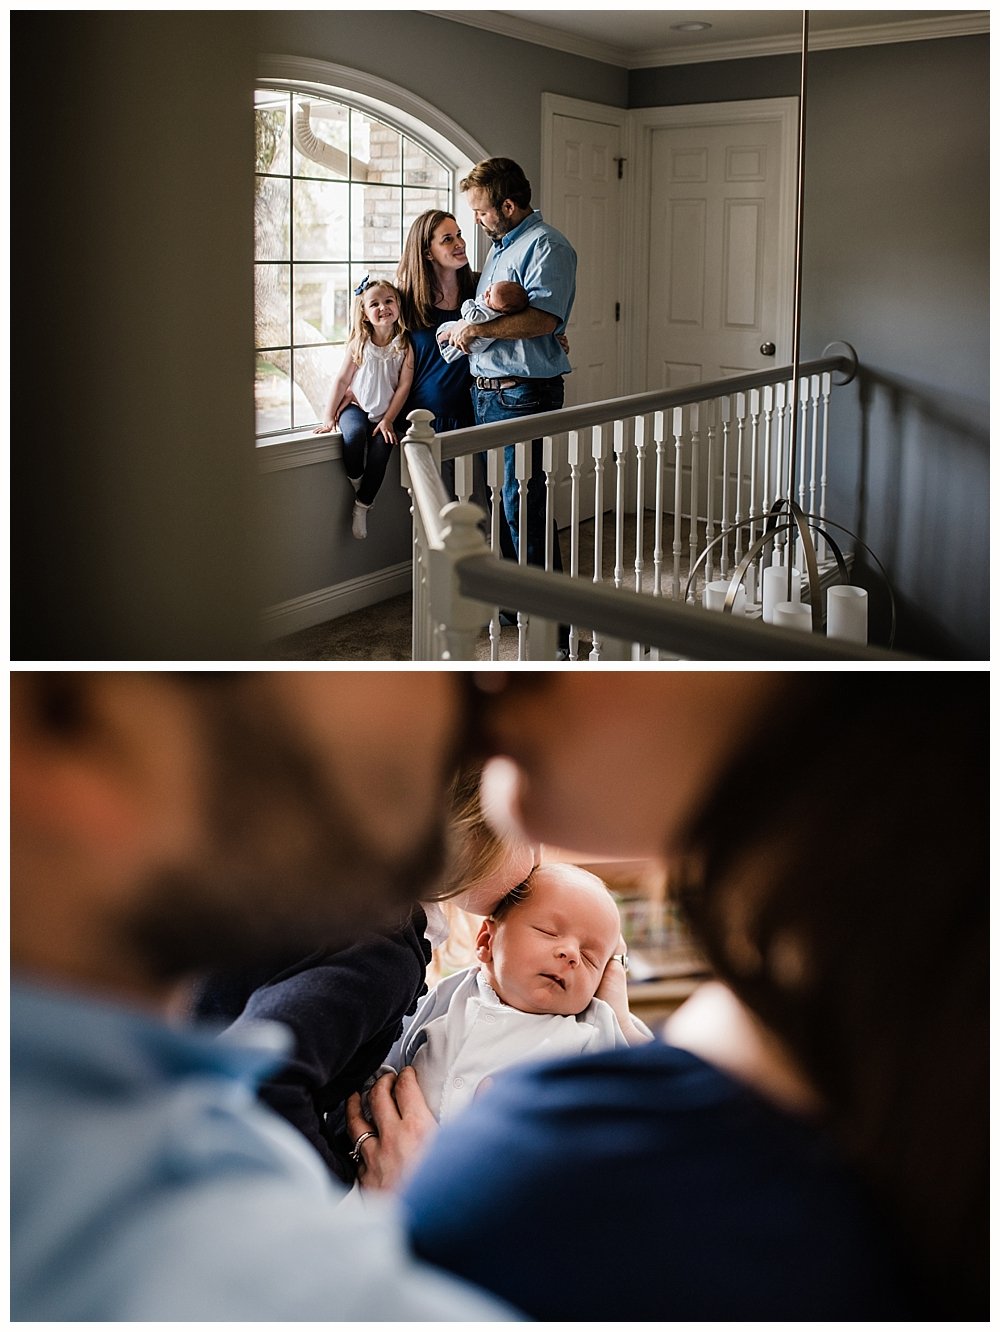 lifestyle newborn photographer in Ocean Springs, Missisisppi